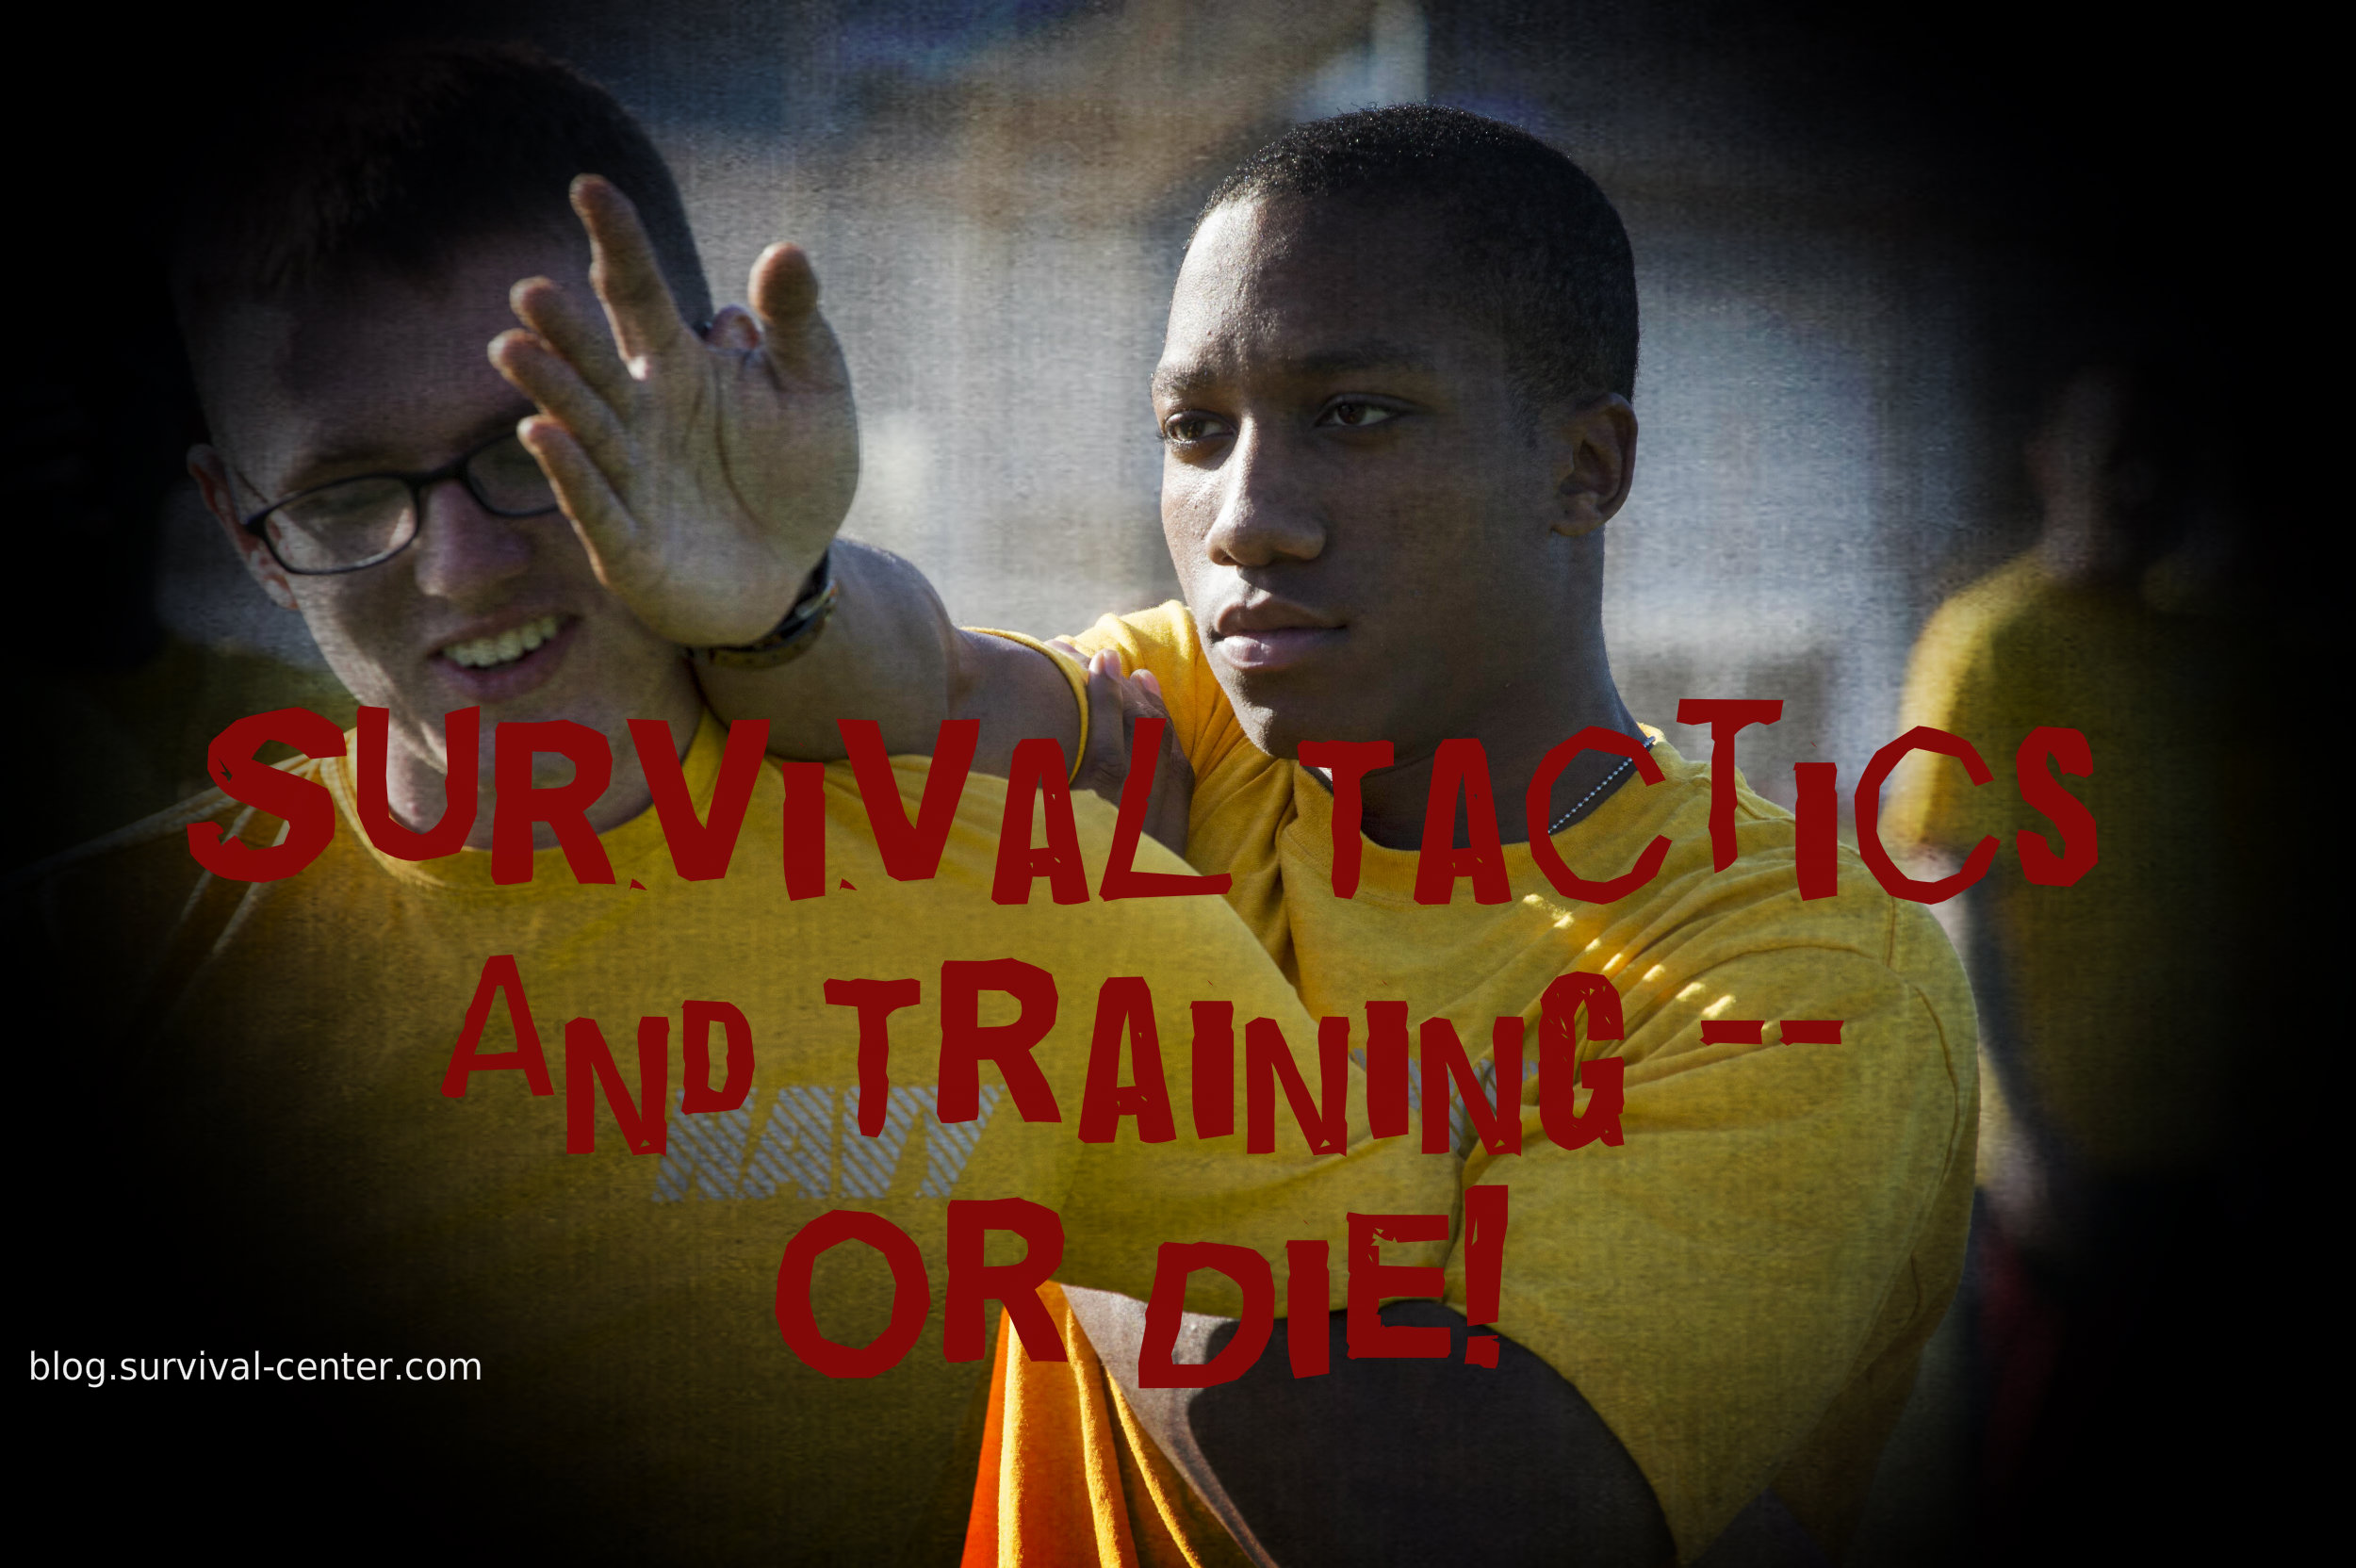 Survival Tactics and Training